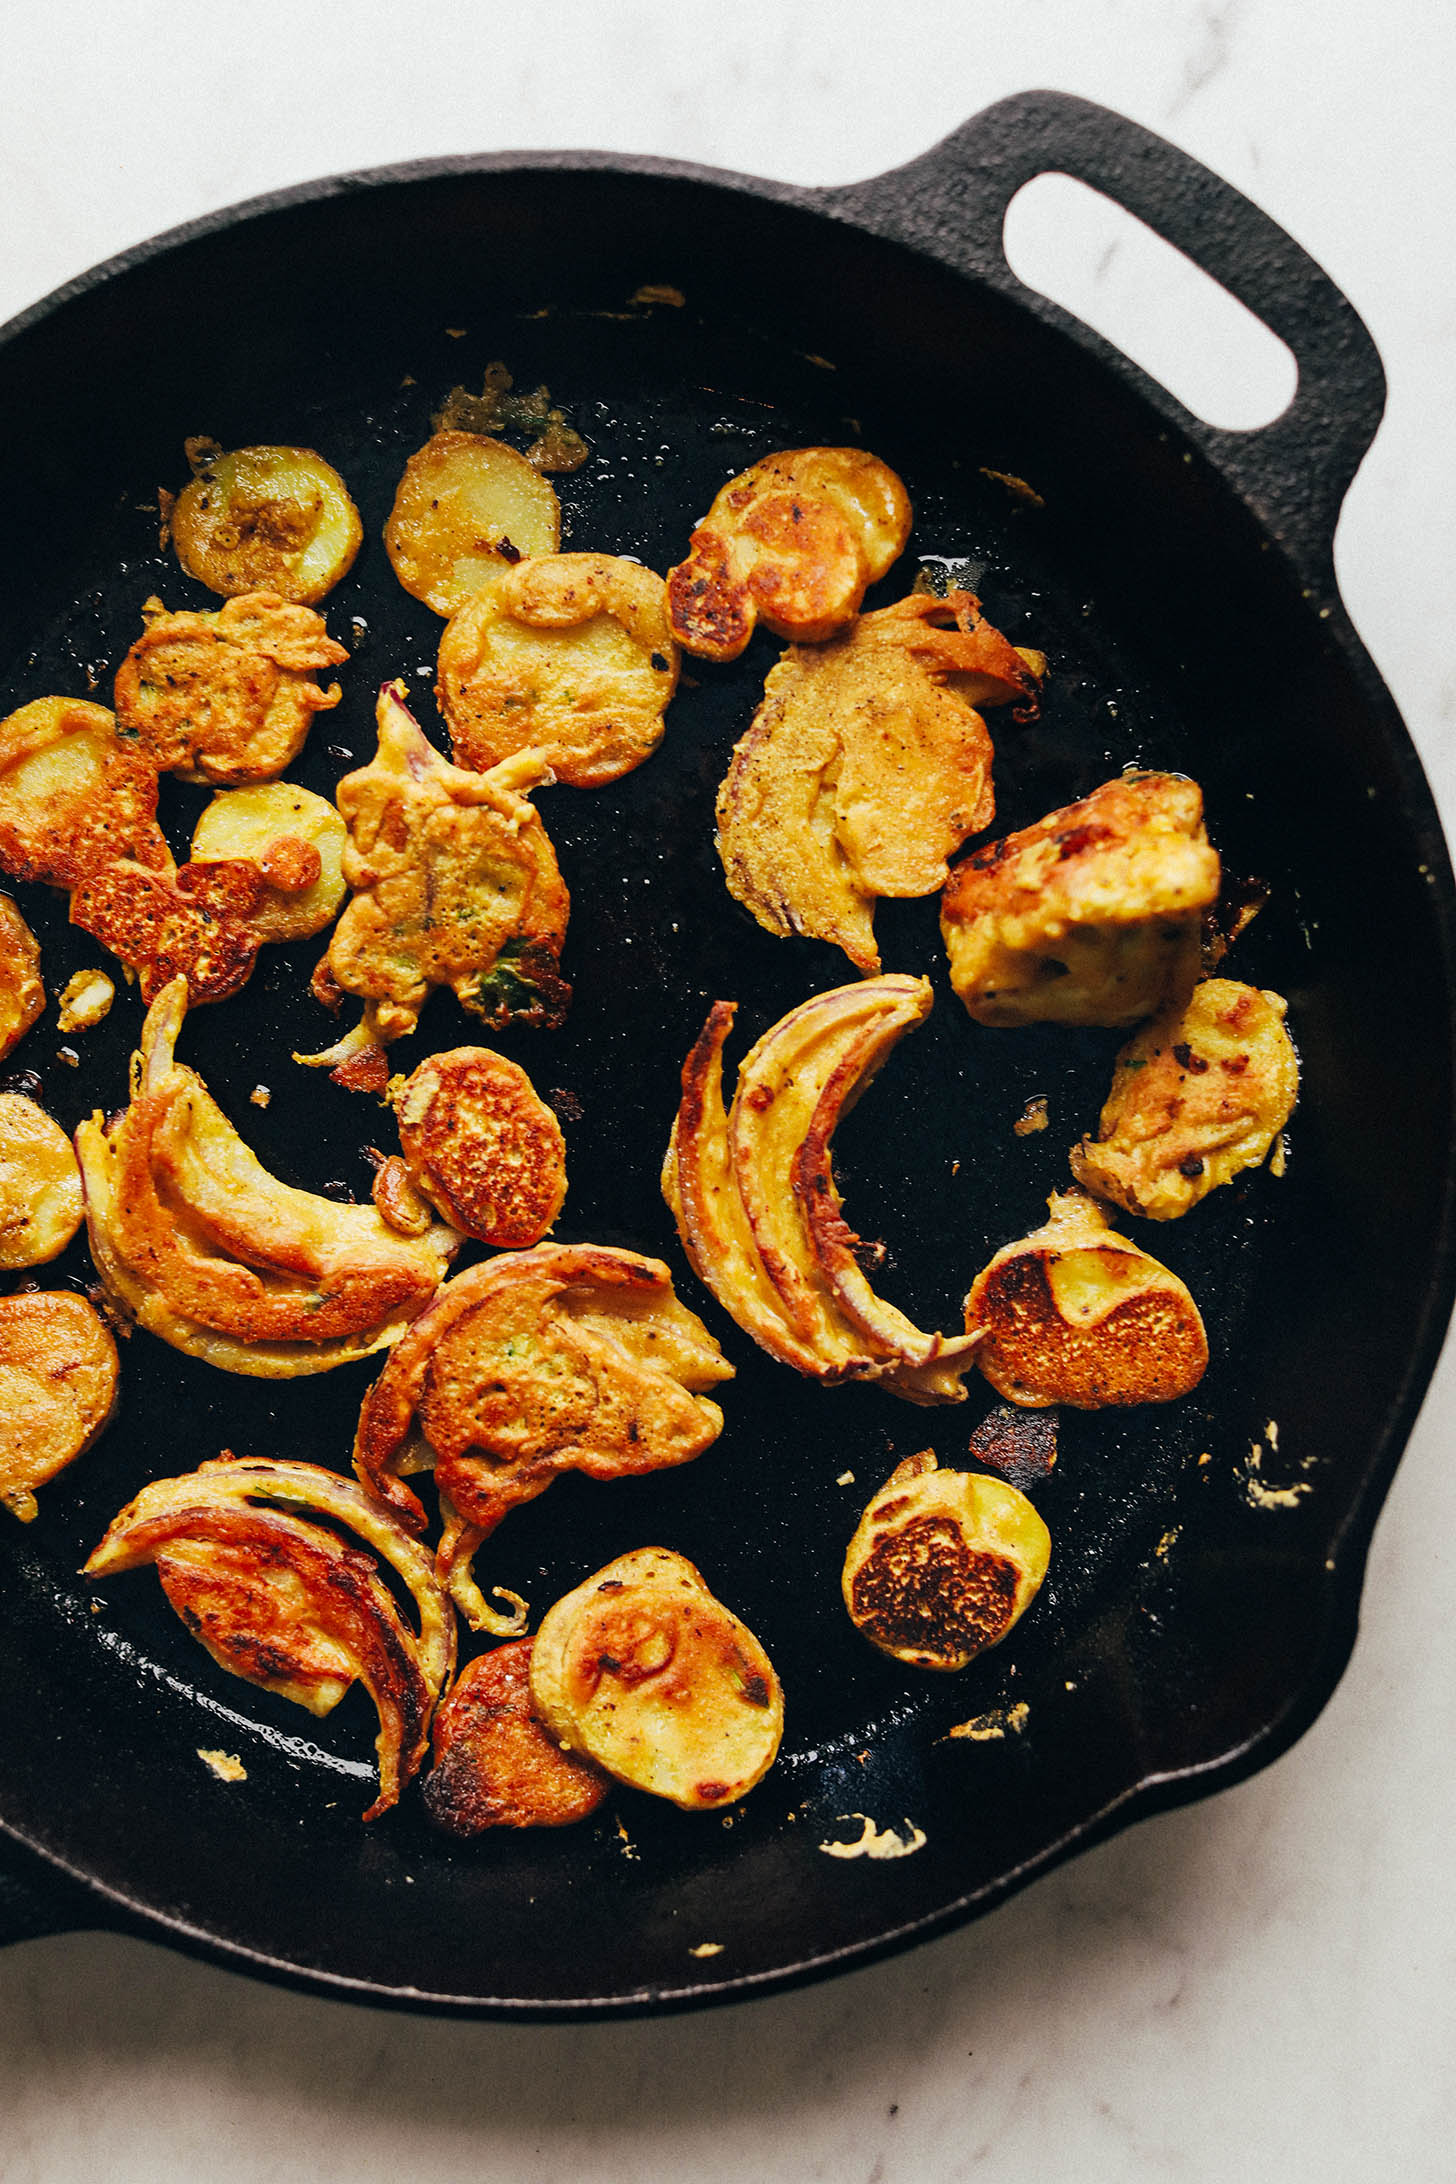 Pan frying Vegetable Pakoras in a cast-iron skillet